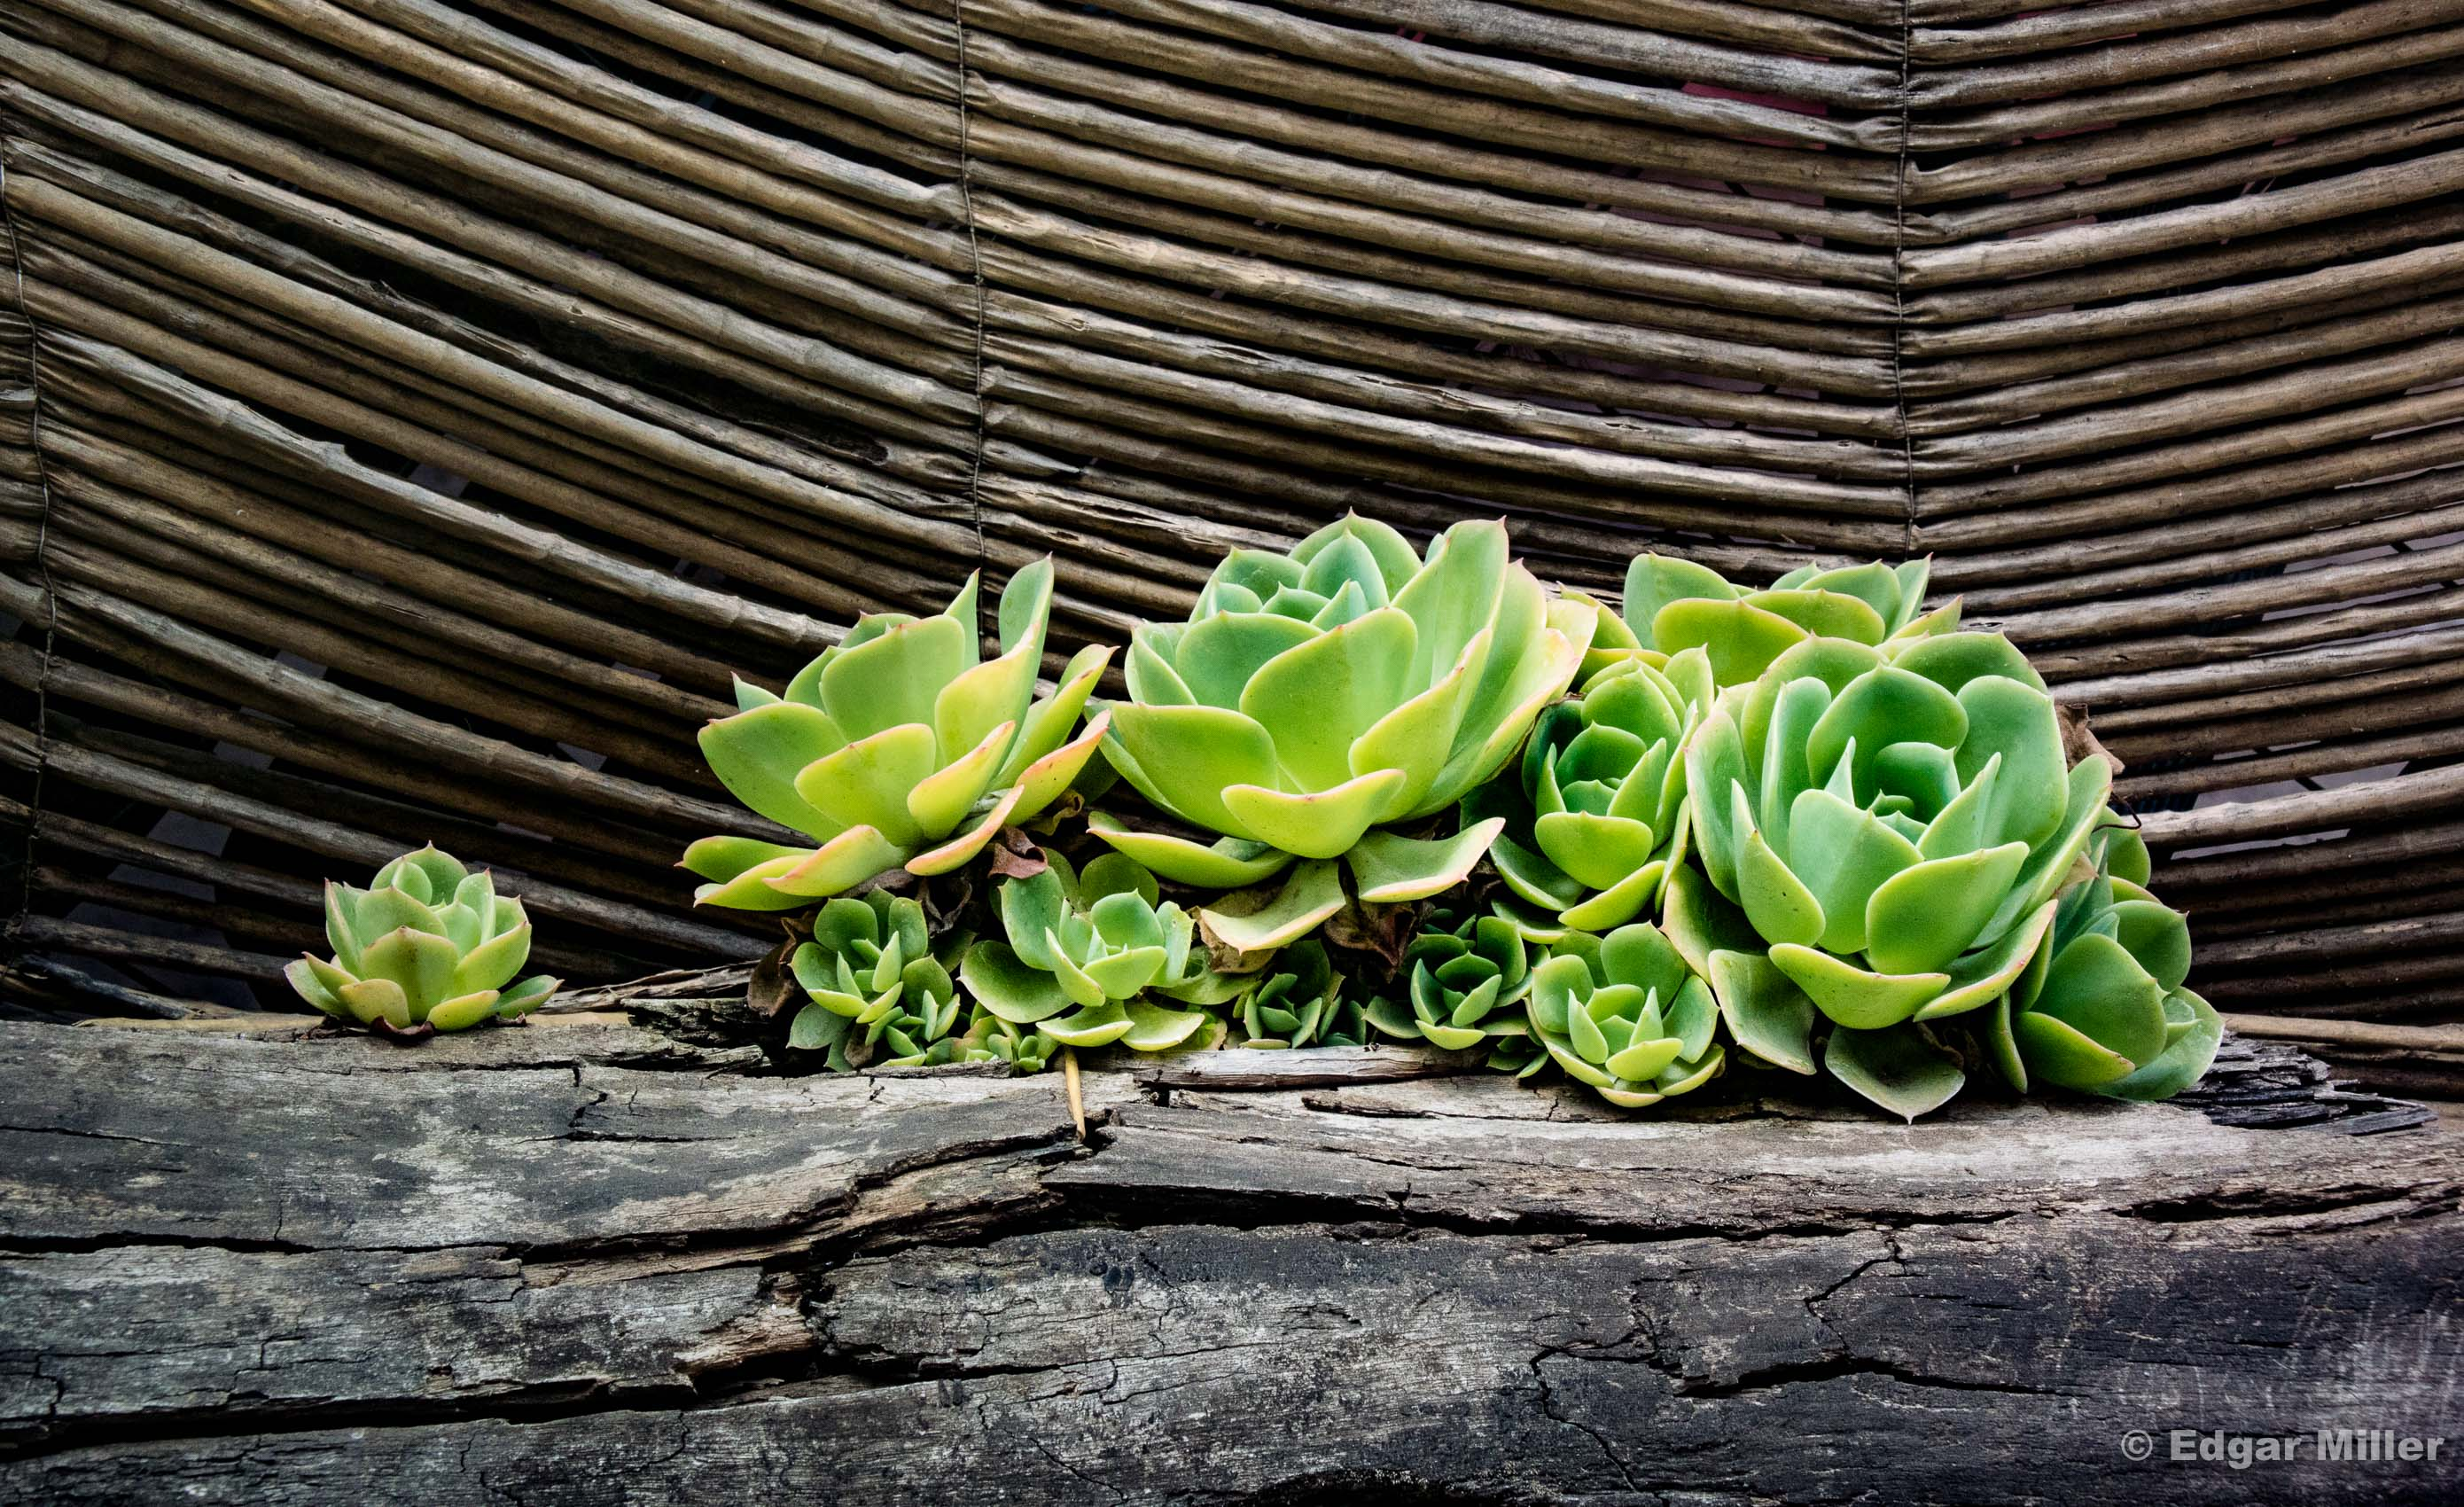 Succulents in Mexico